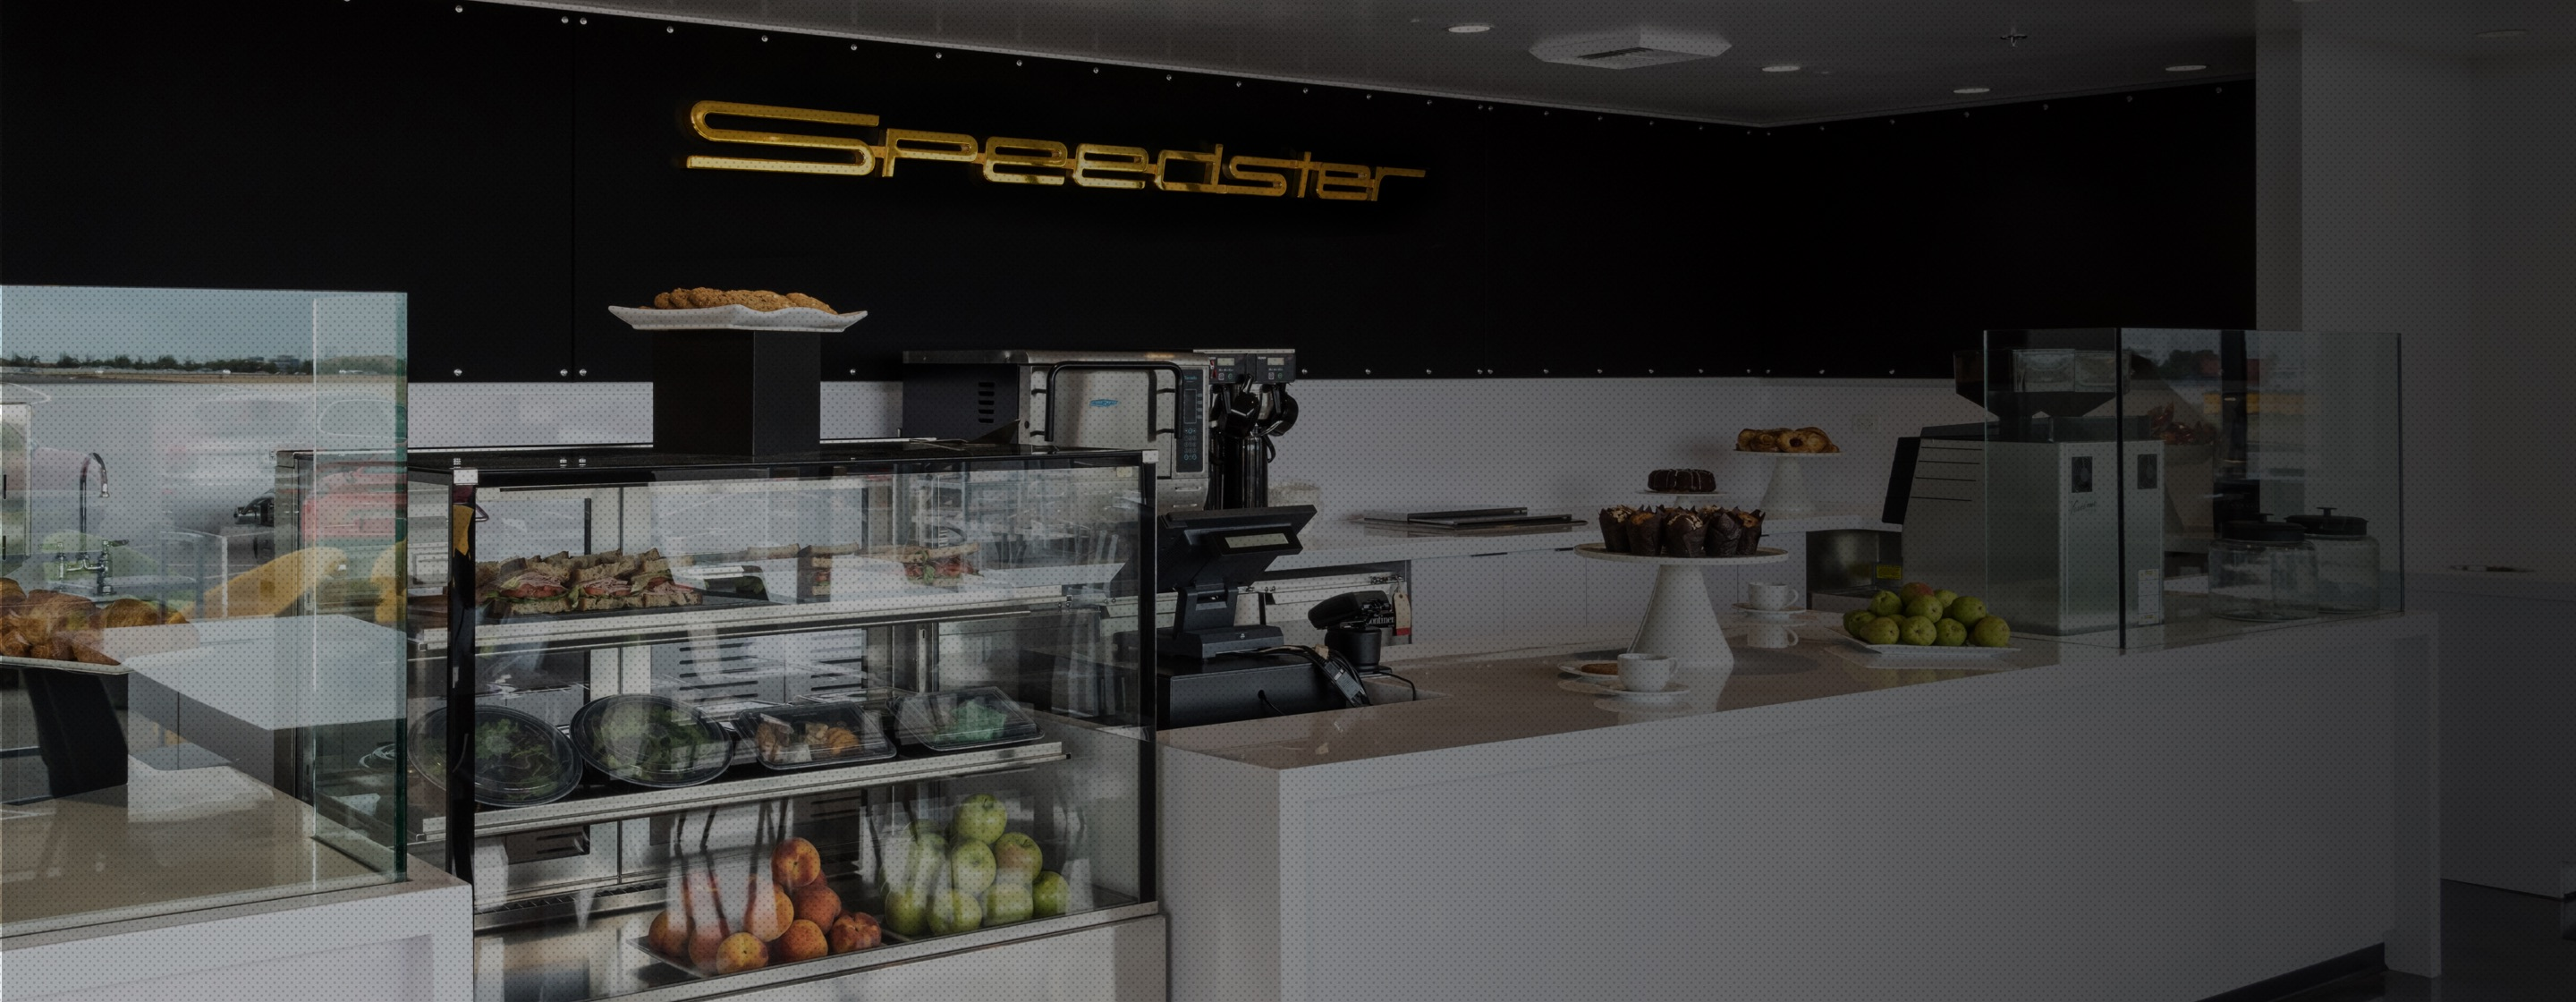 Porsche Experience Center Los Angeles Speedster Cafe